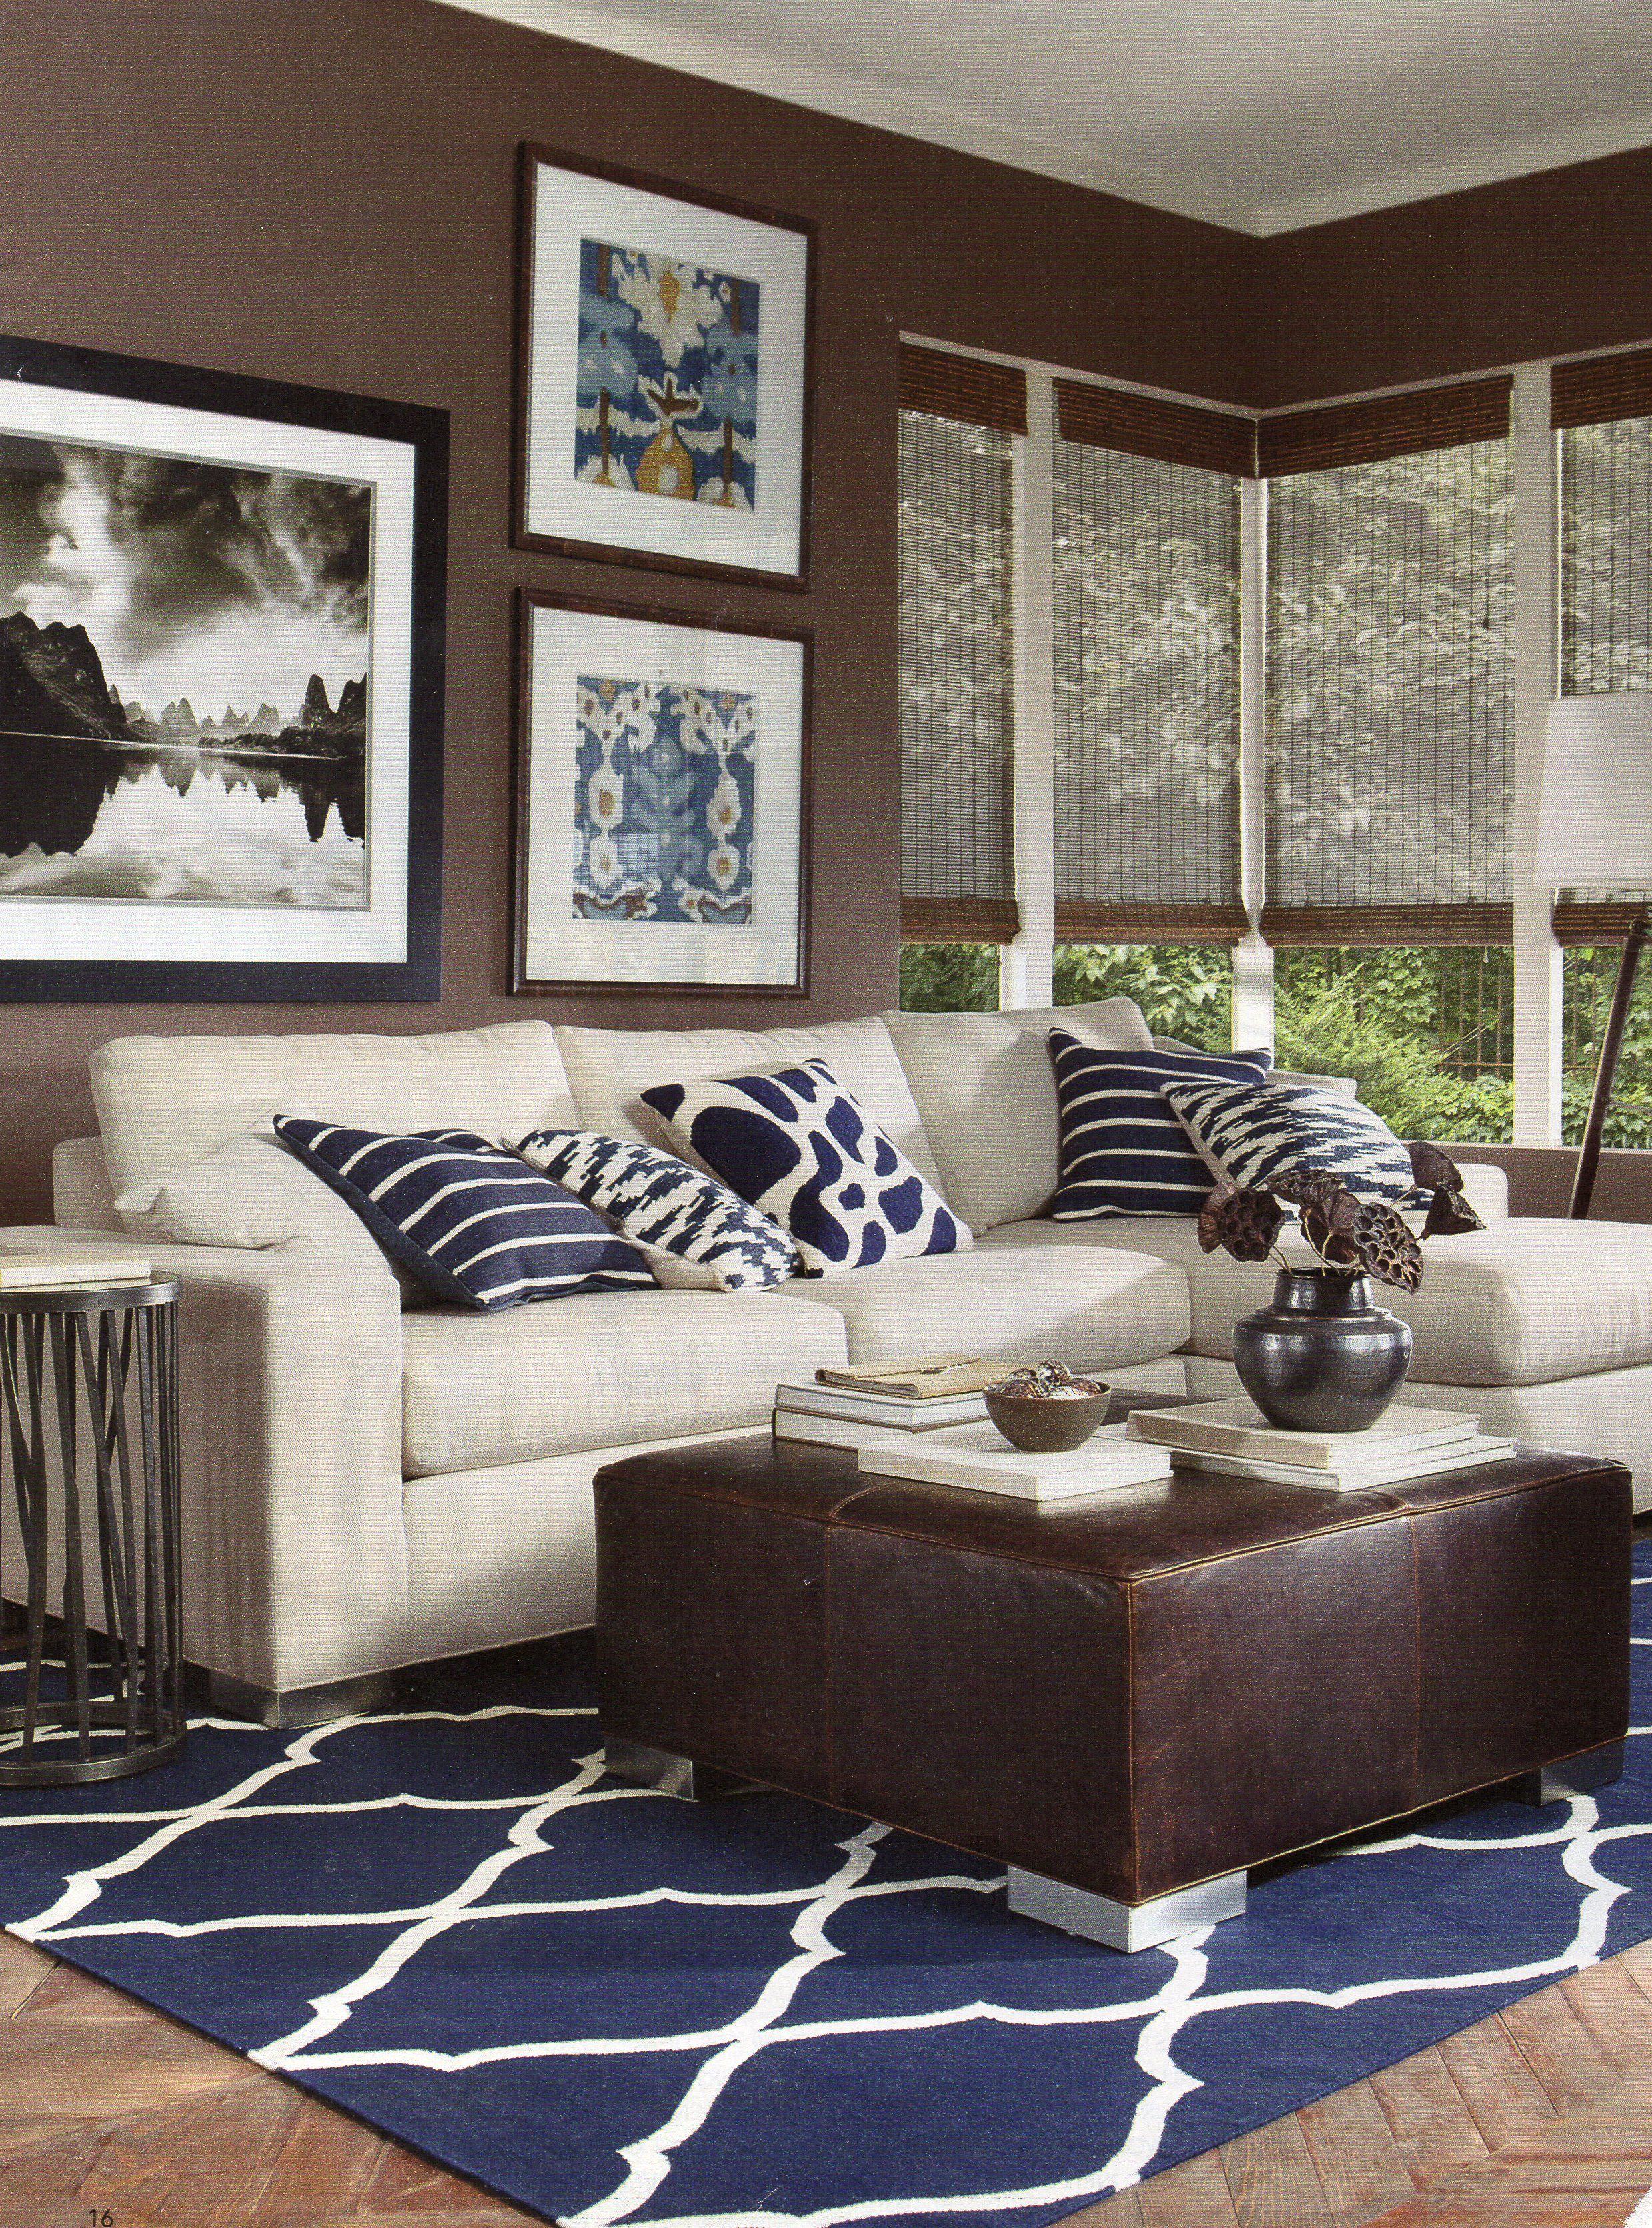 living room couches ethan allen small joanna gaines since i can t have a white couch with kids dark and walls